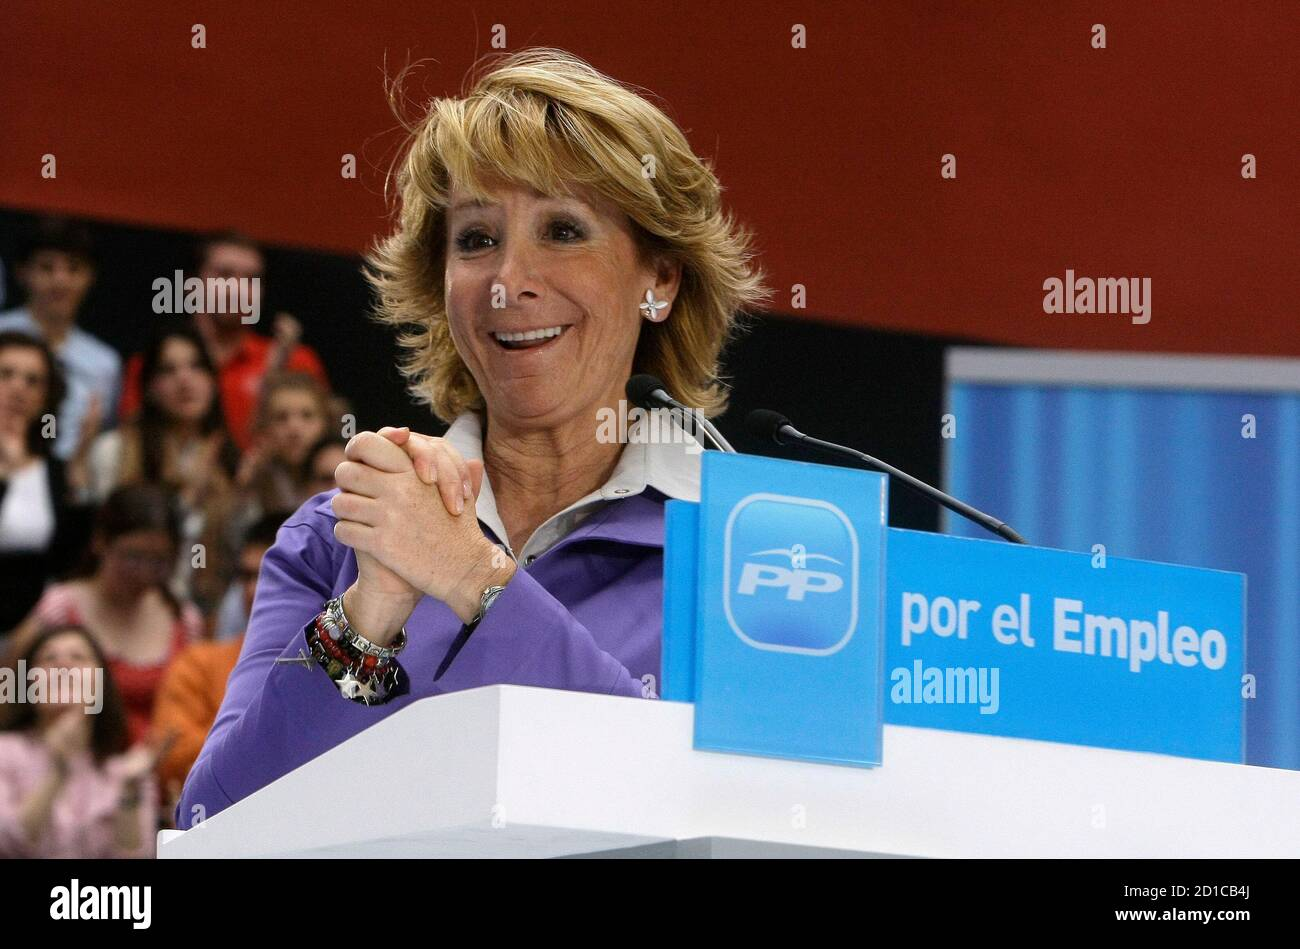 Madrid's regional President Esperanza Aguirre acknowledges applause during a rally about employment in Madrid April 25,  2009.  Banner reads 'For employment'. REUTERS/Andrea Comas (SPAIN POLITICS EMPLOYMENT BUSINESS) Foto Stock